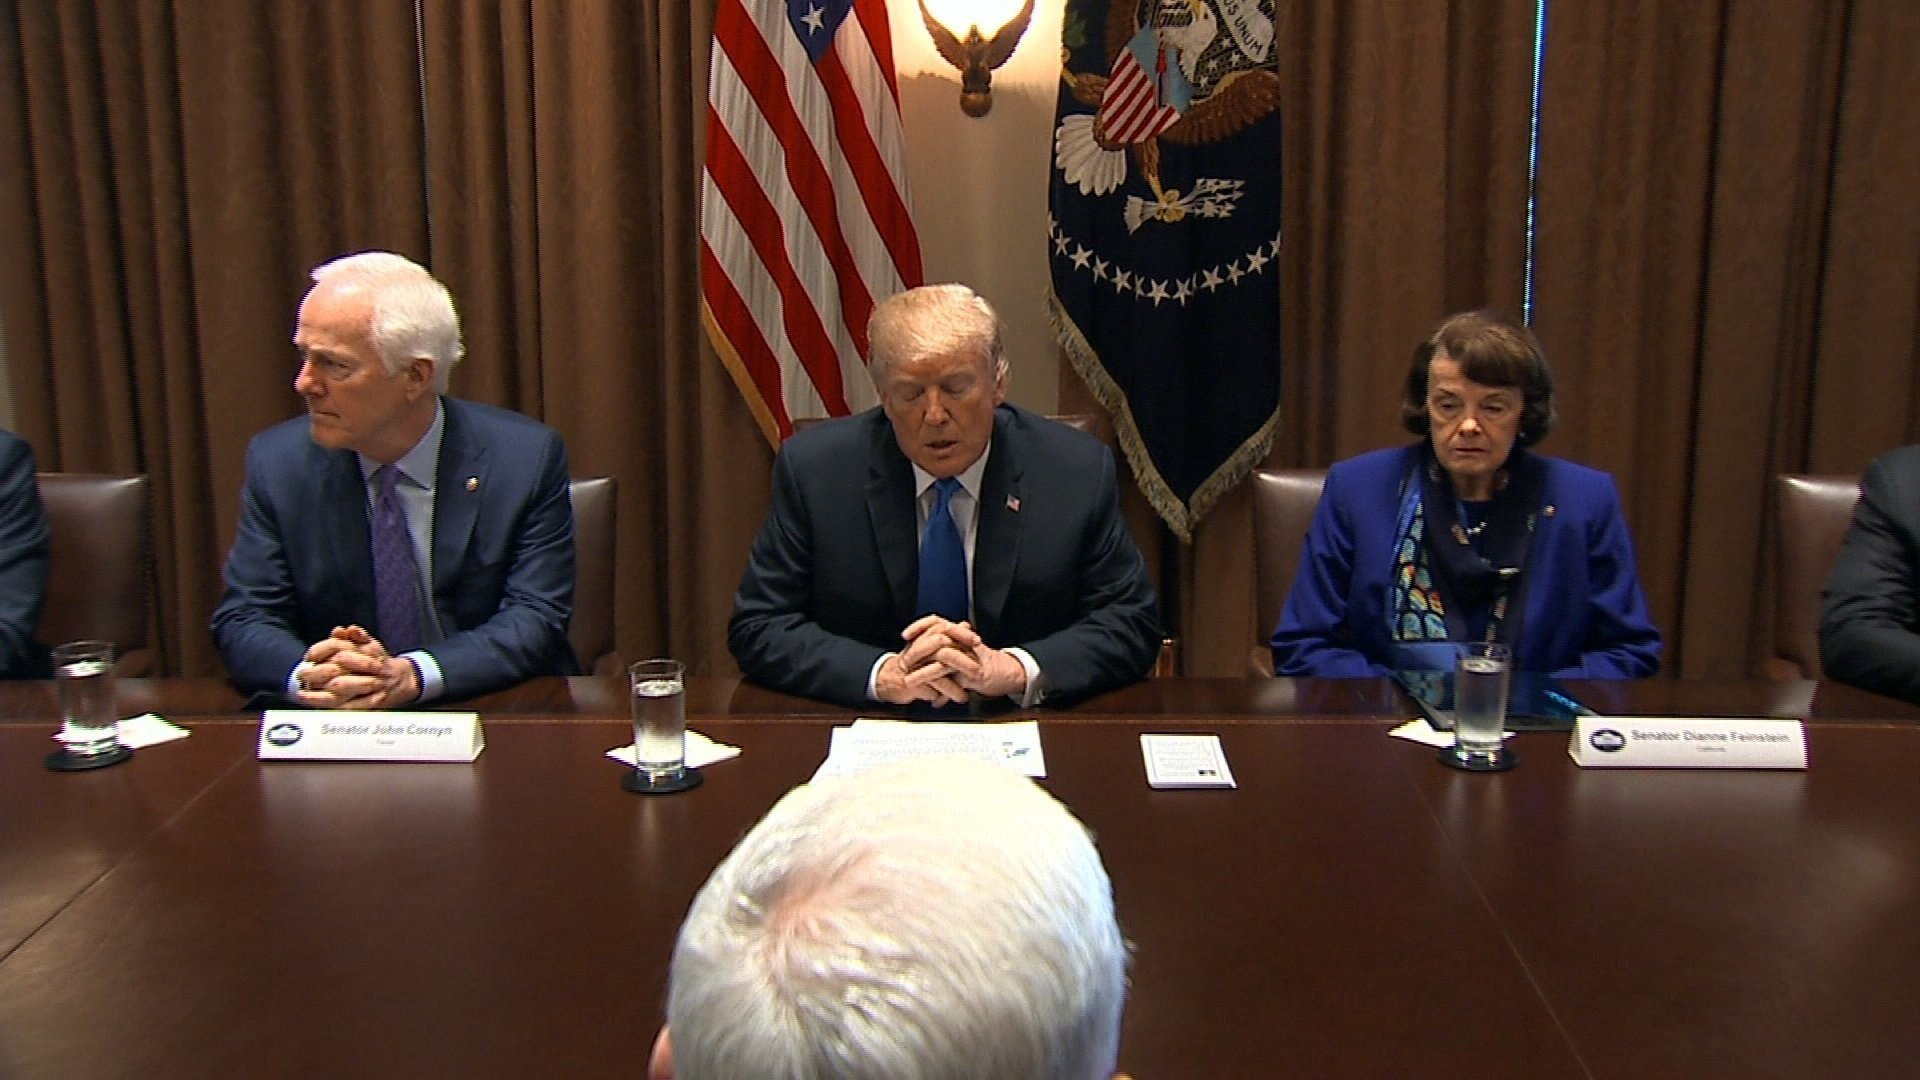 President Trump Meets With Republicans, Democrats on Gun Control